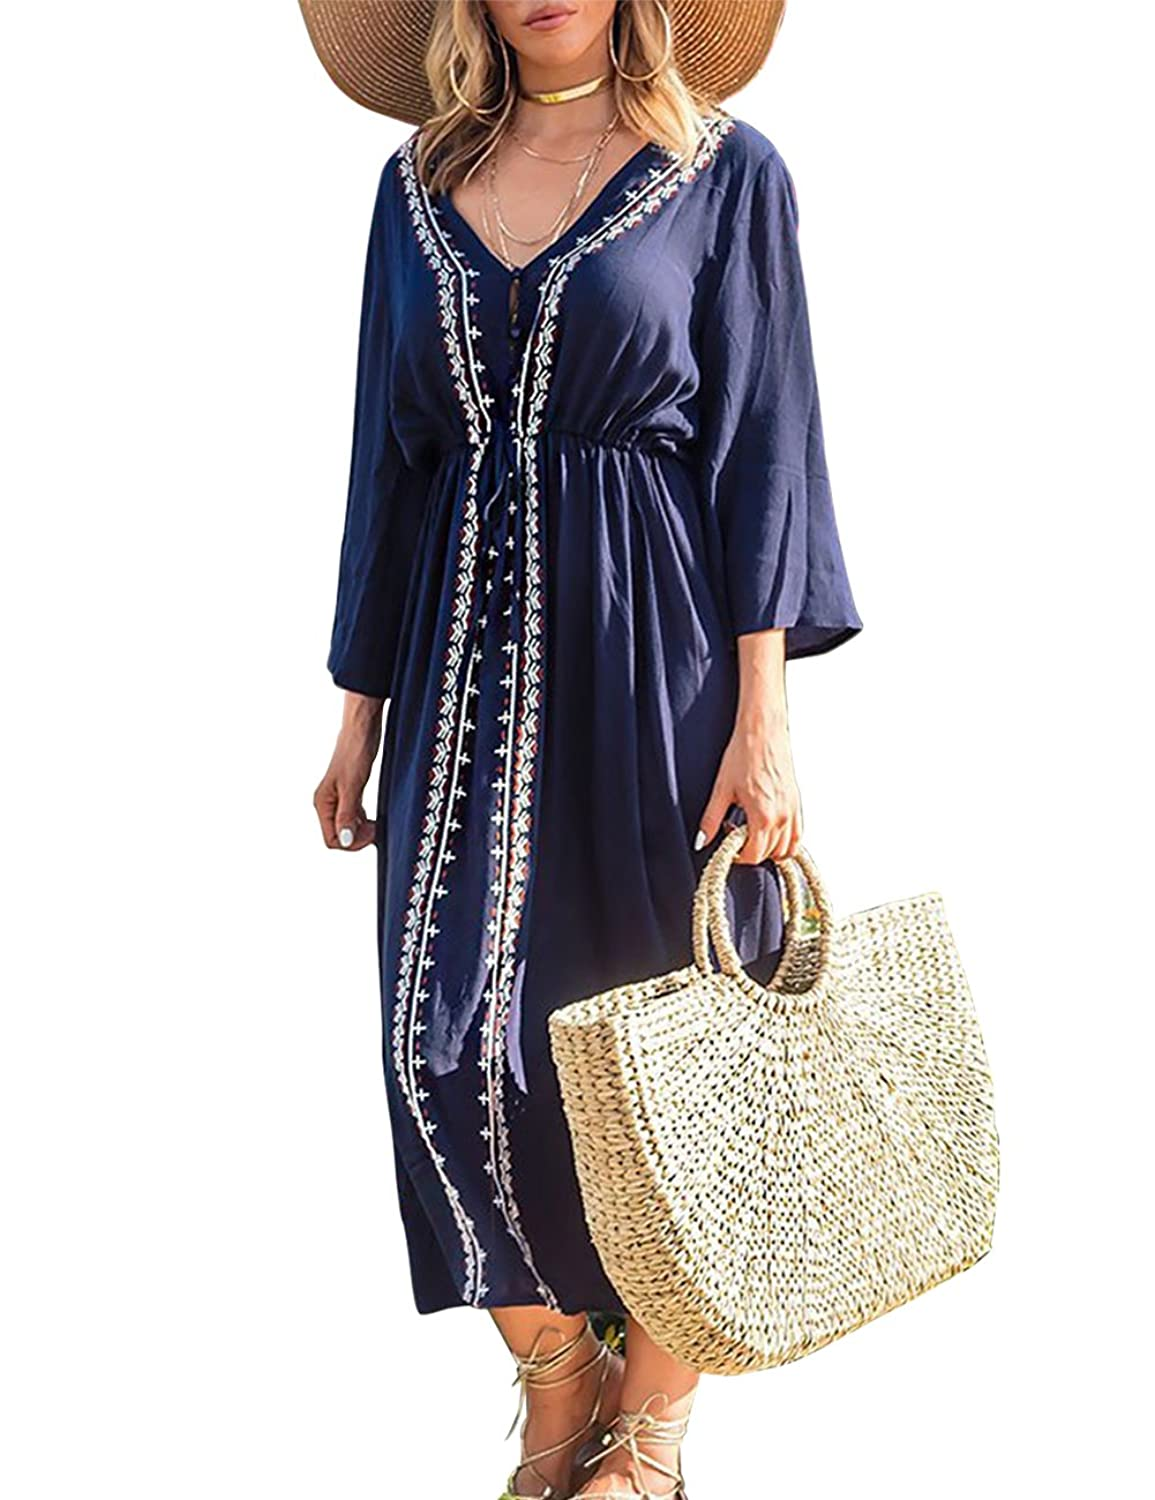 7bbdda5aeec4 Embroidered Floral Maxi Cover Up Dress Long Beach Dress is featuring 3/4  sleeve, v neck, with embroidery, with drawstring, the waist is adjustable.